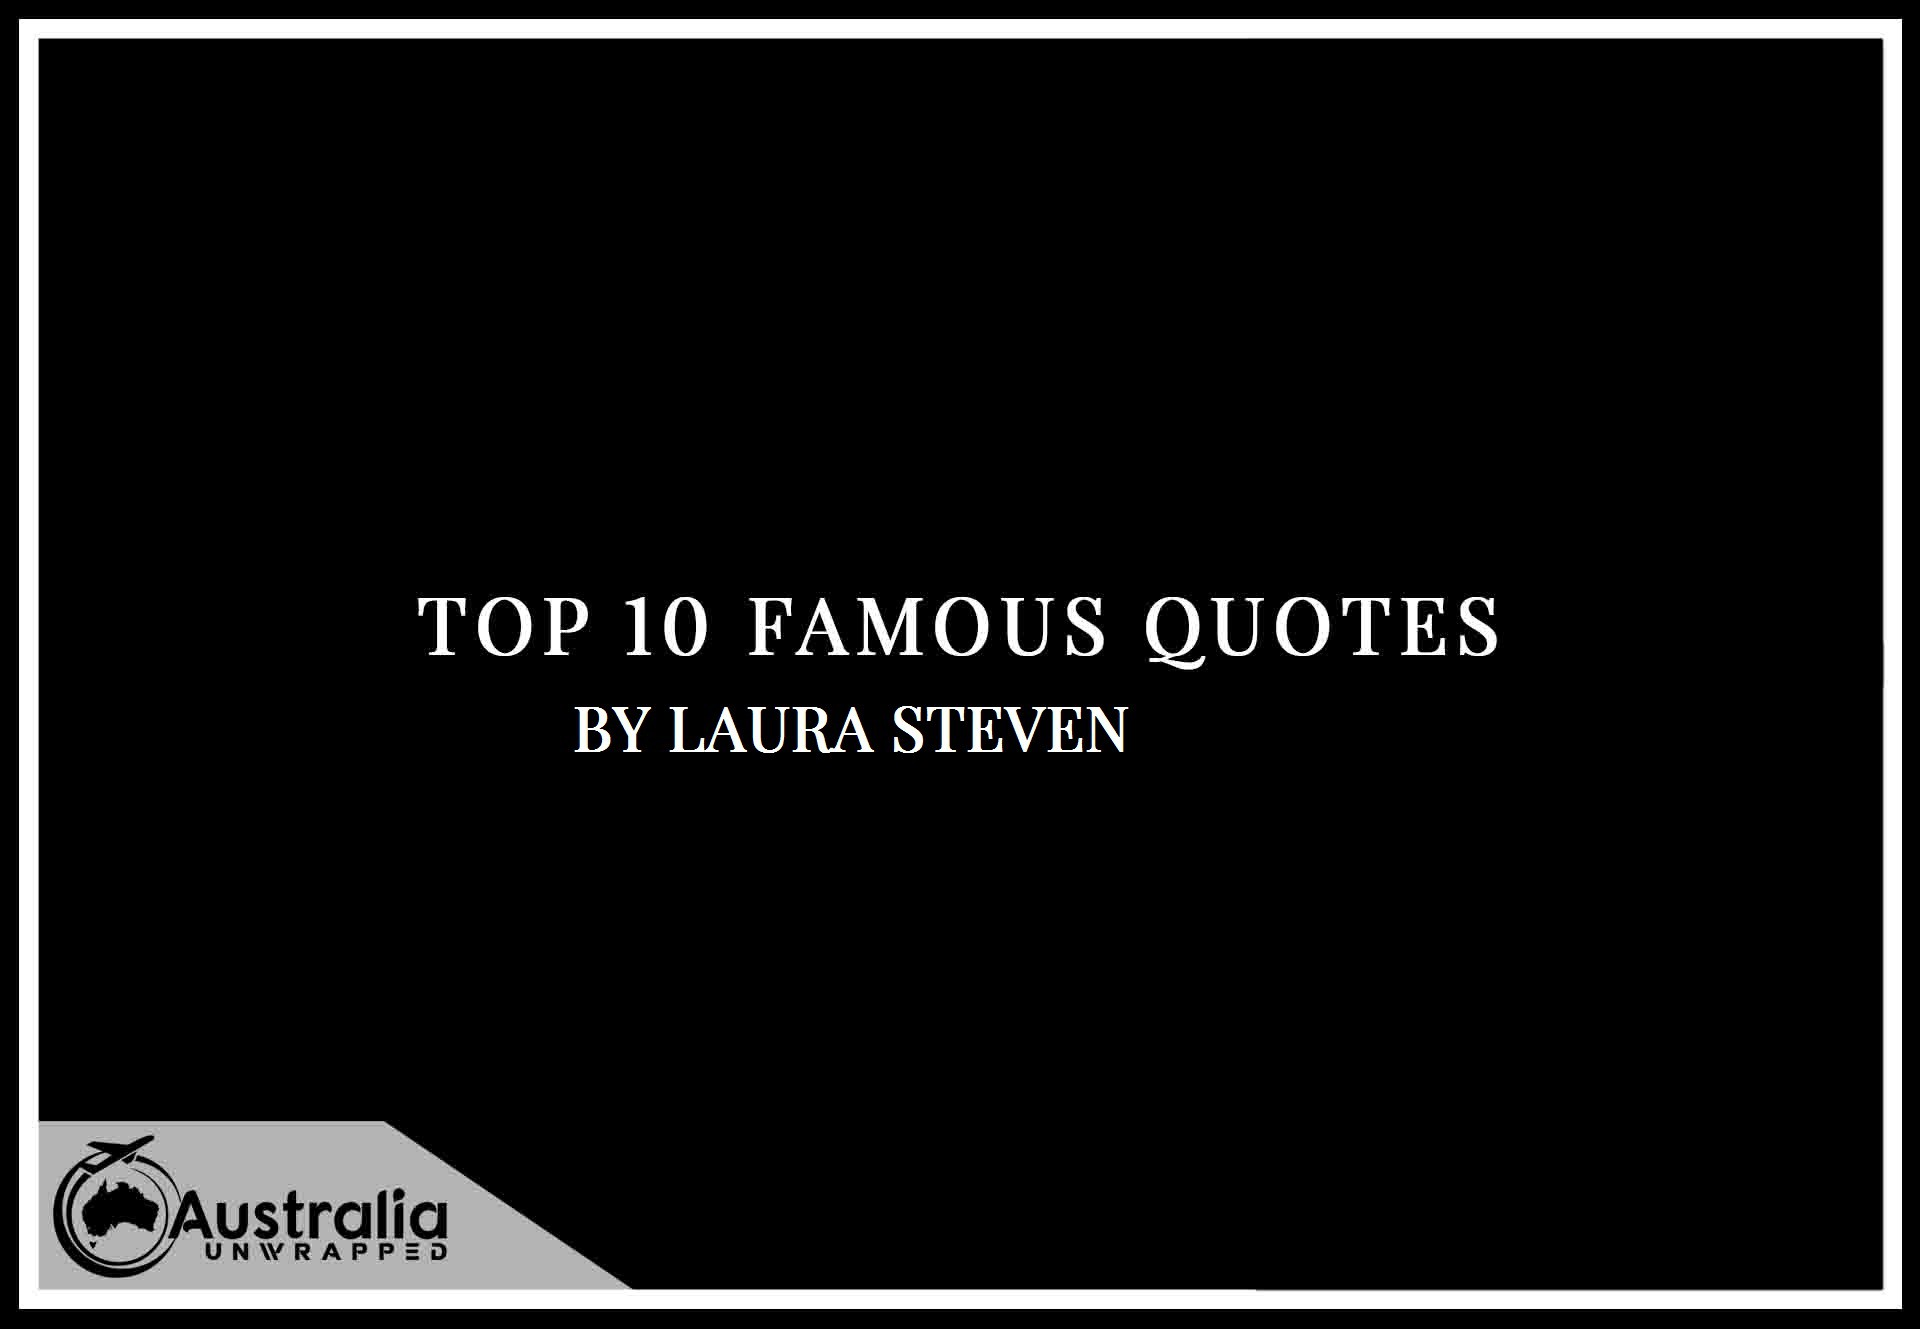 Laura Steven's Top 10 Popular and Famous Quotes